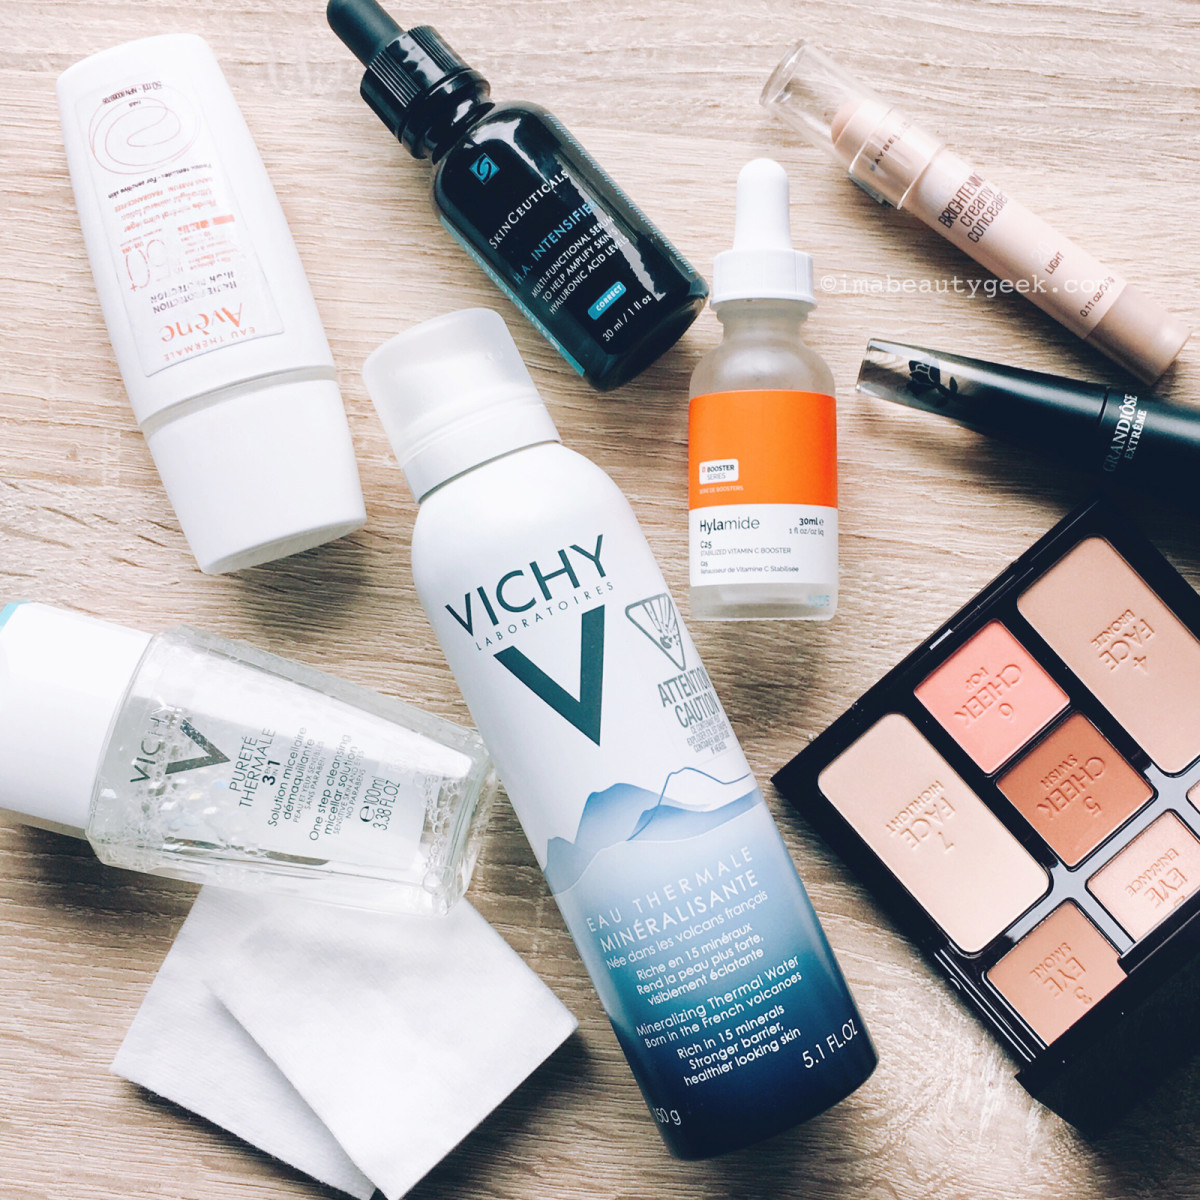 Weekend Away Beauty – when only minutes to pack